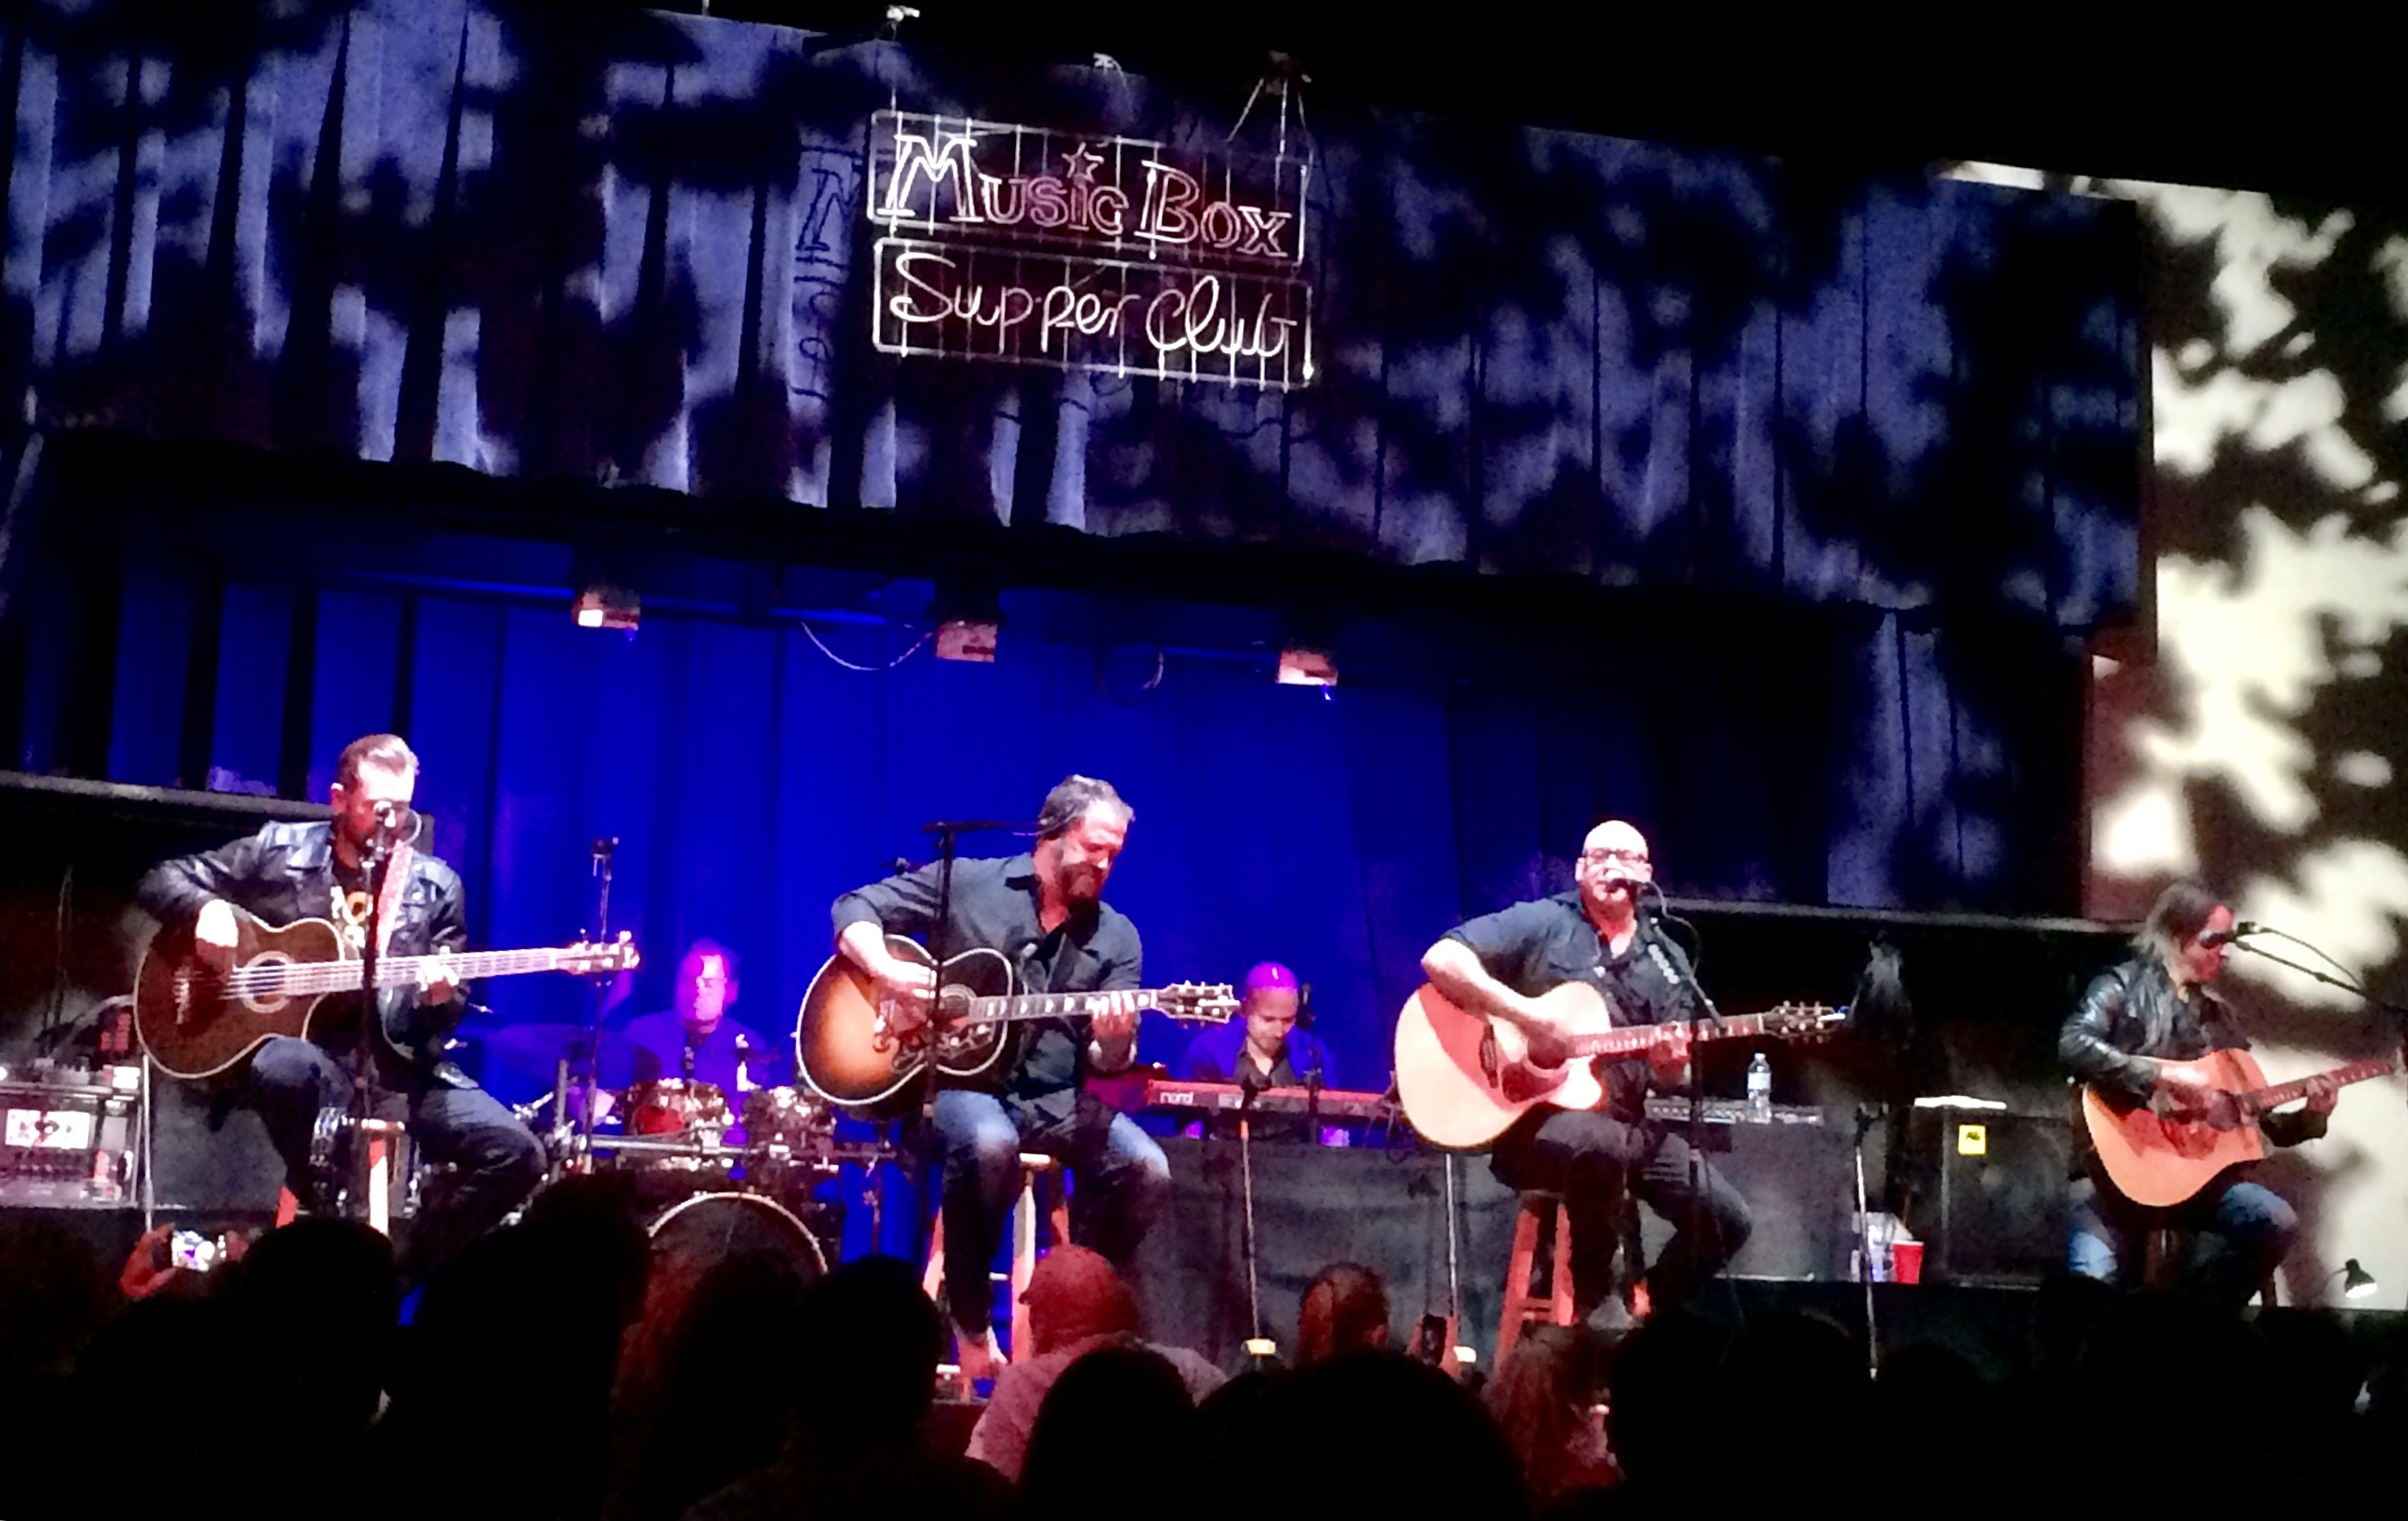 Sister Hazel Blends 90s Jangle Rock with Introspective Country Twang